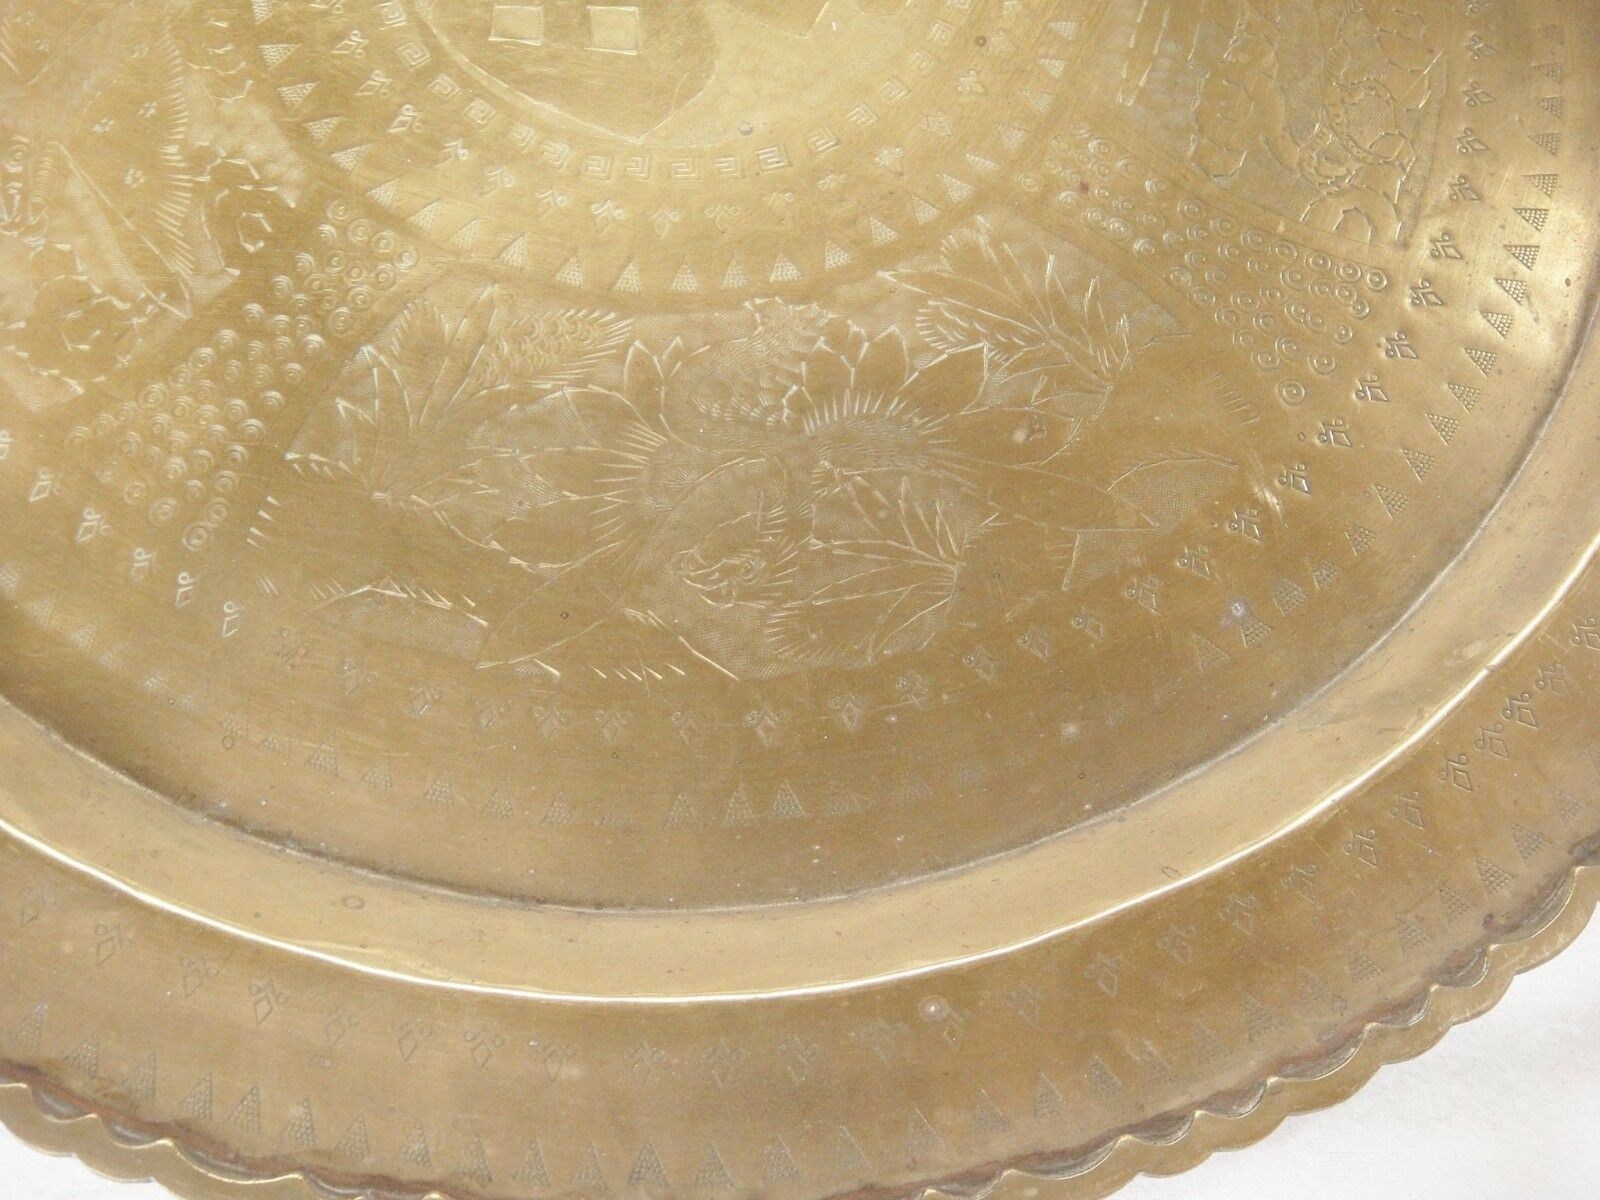 """Huge Brass Asian Tray Centerpiece Charger 22"""" Birds of Prey Rabbit Engraved HTF image 4"""